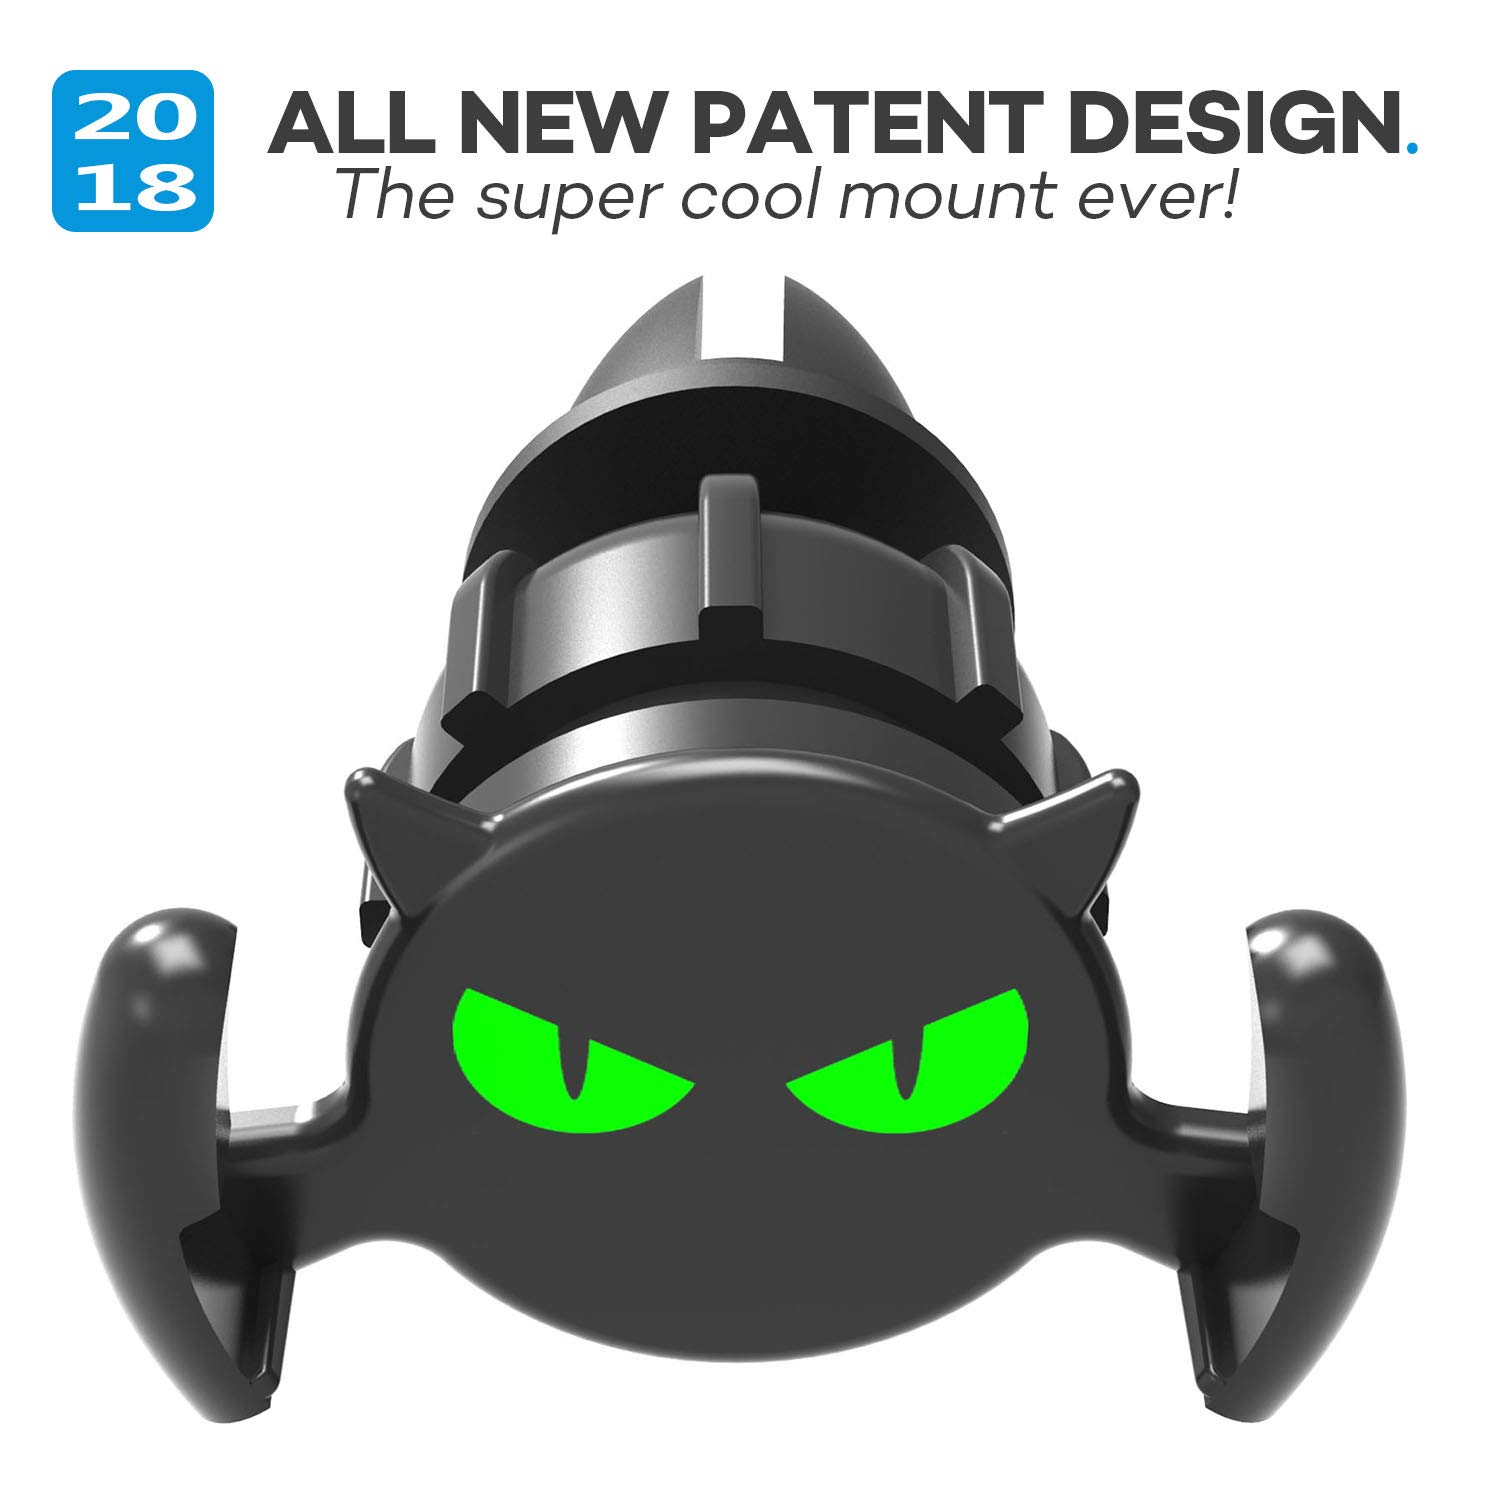 Black 5558977326 Quarble Little Devil Glowing Eyes 2 in 1 Car Air Vent Dashboard Mount Compatible with Pop Expanding Phone Grip and Stand All Cool Idea